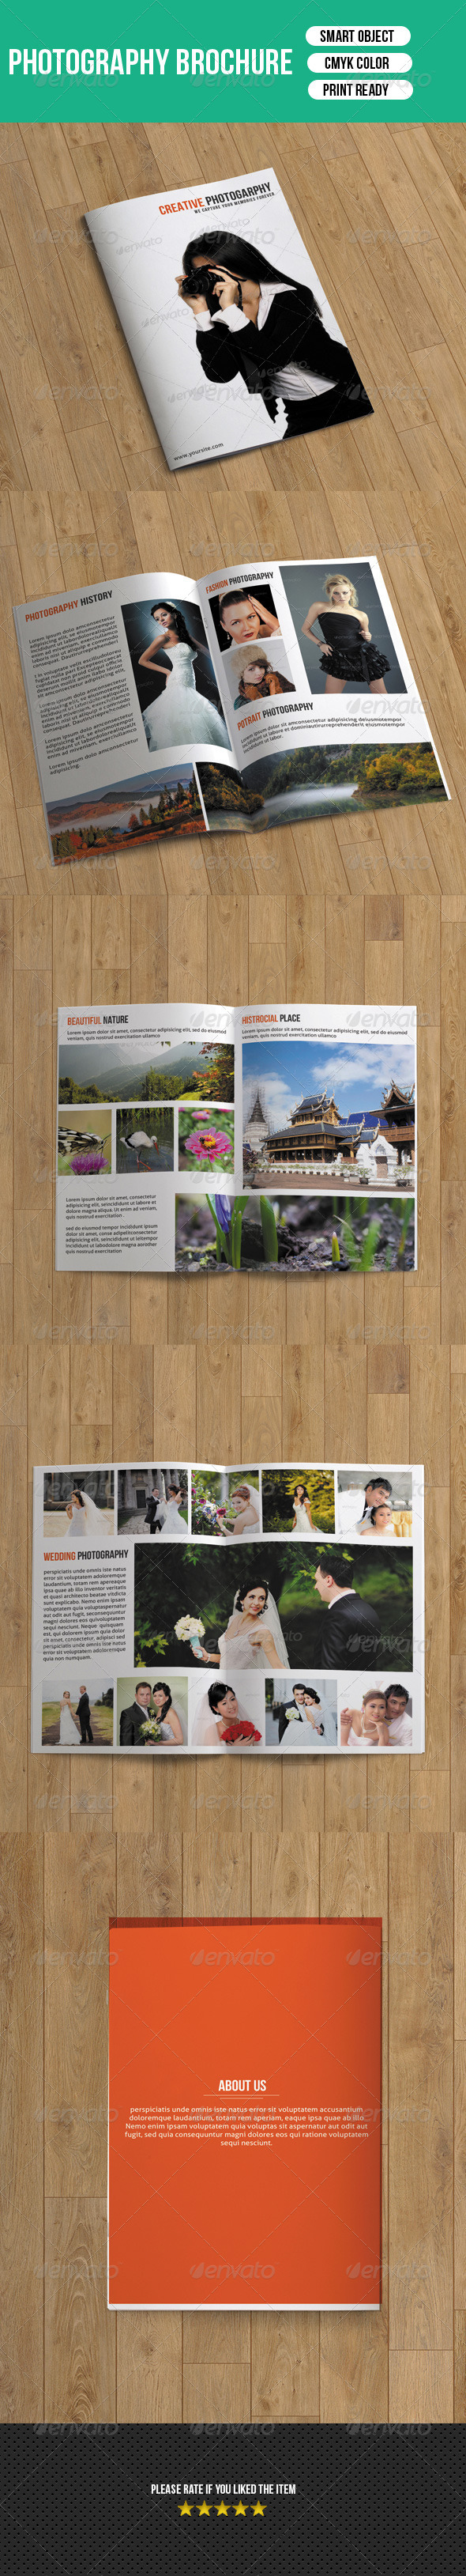 Photography Brochure-8 Pages - Corporate Brochures